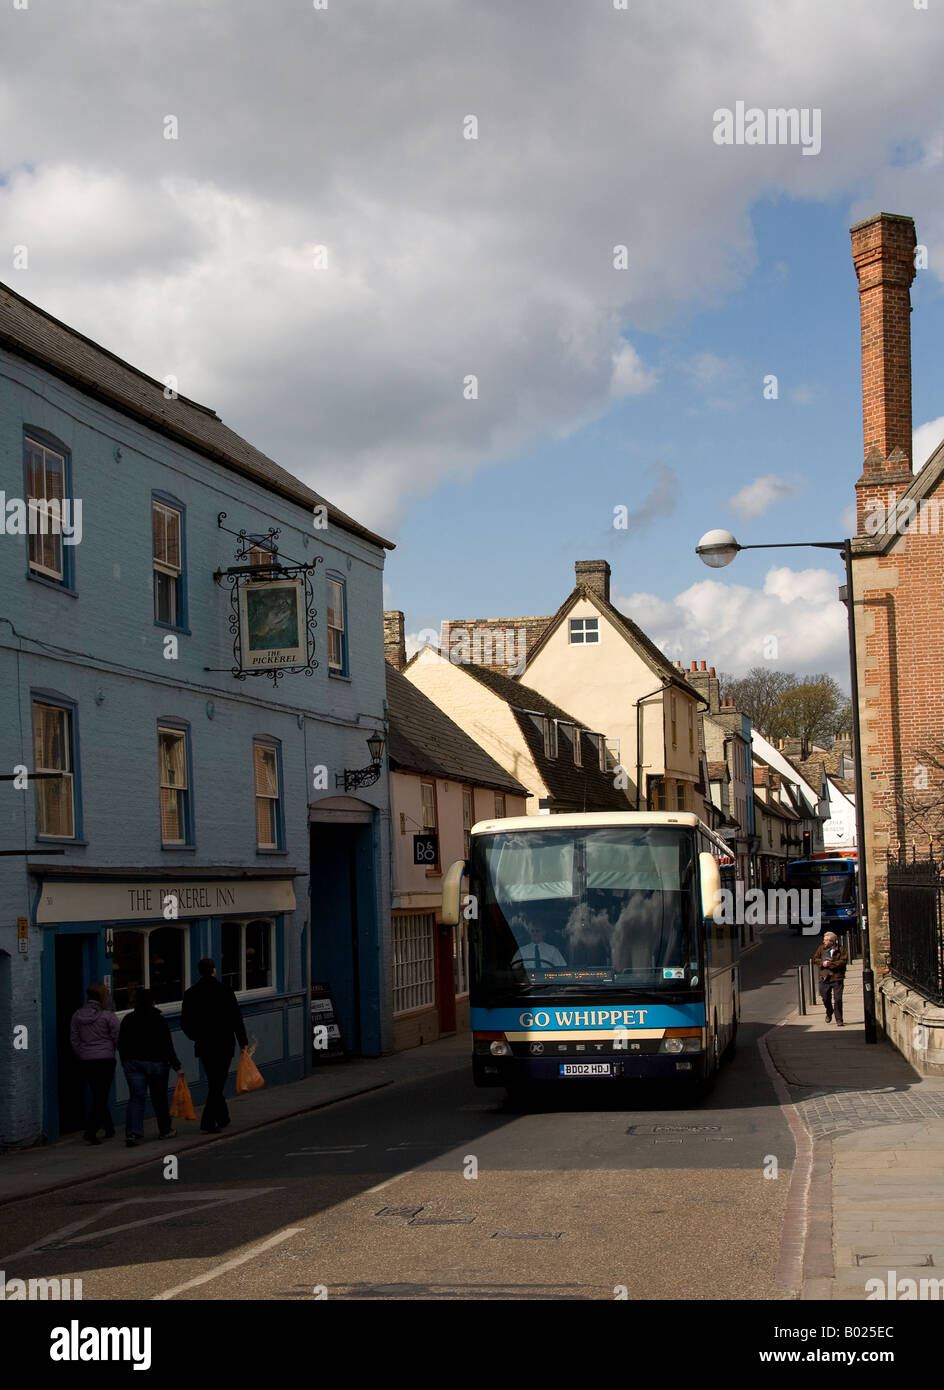 Bus passing the Pickeril Inn on Magdalene Street, Cambs. - Stock Image